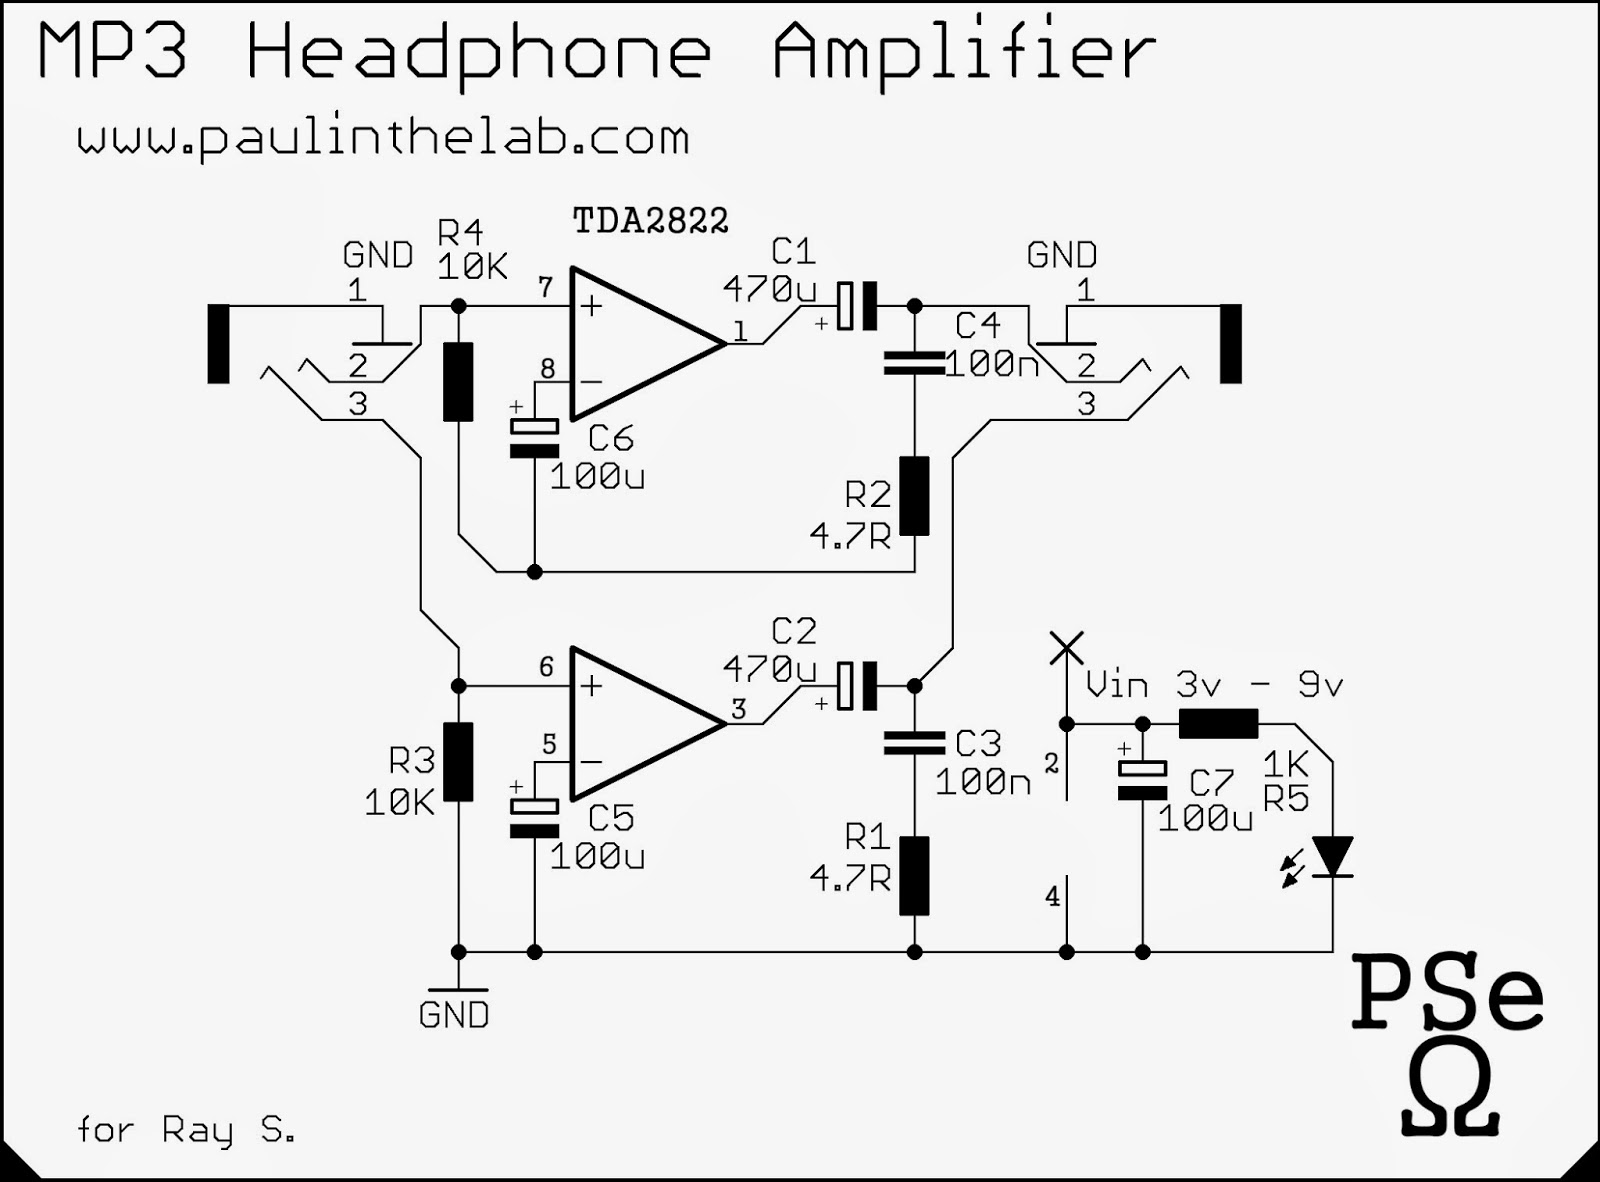 Similiar Headphone Amplifier Schematic Keywords Tube Otl Circuit Diagram Amplifiercircuit Paul In The Lab Mp3 Ipod Tda2822m